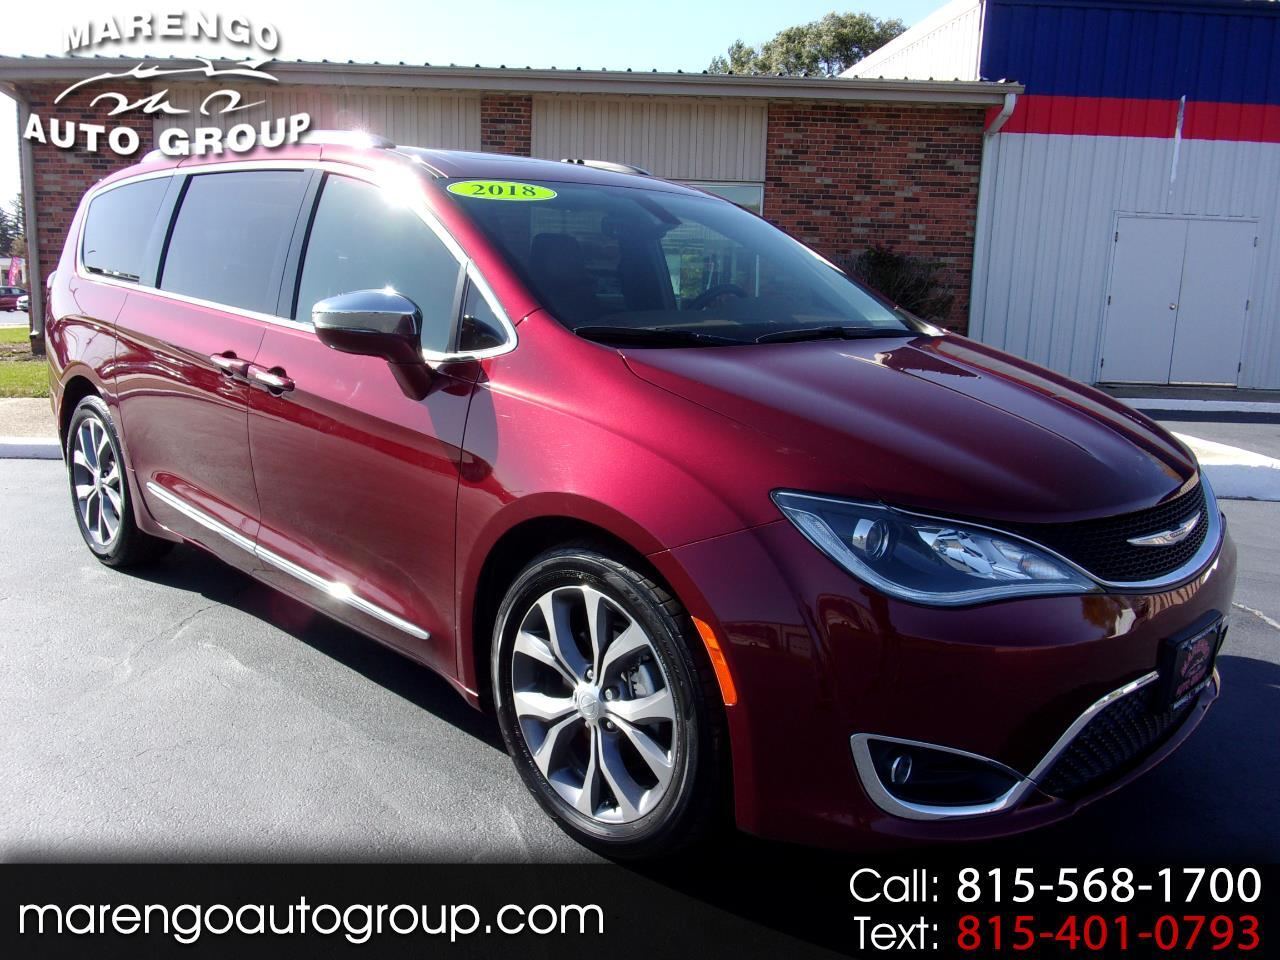 used 2018 Chrysler Pacifica car, priced at $29,996